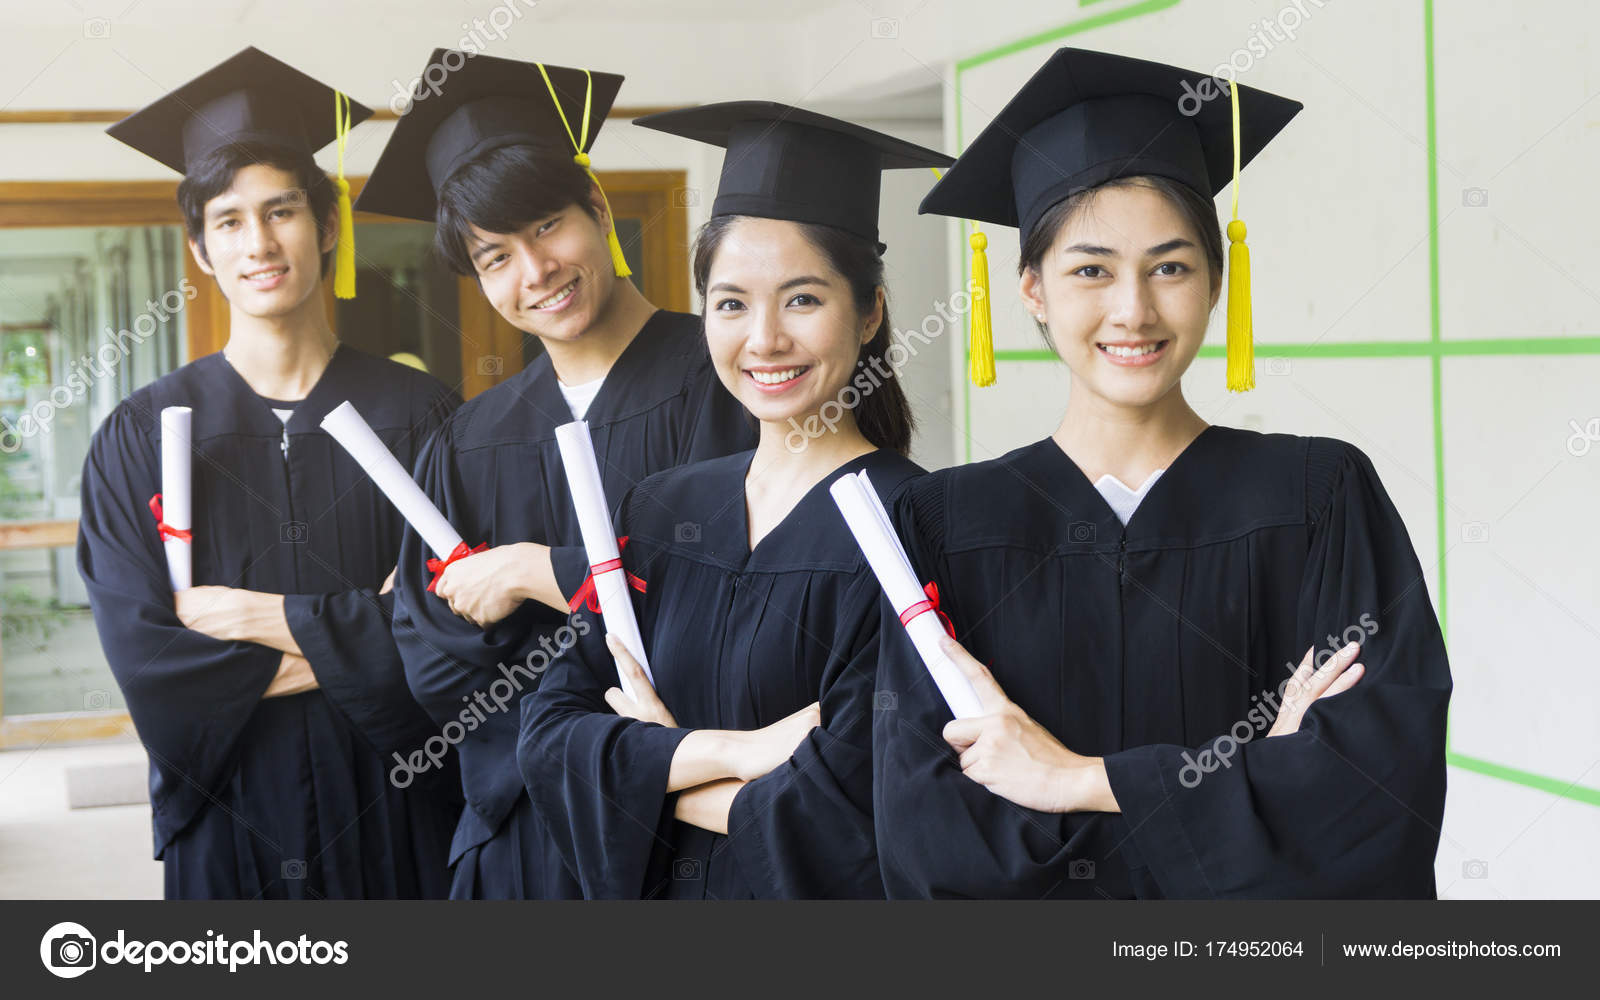 the people students man and woman with black graduation gowns hold ...